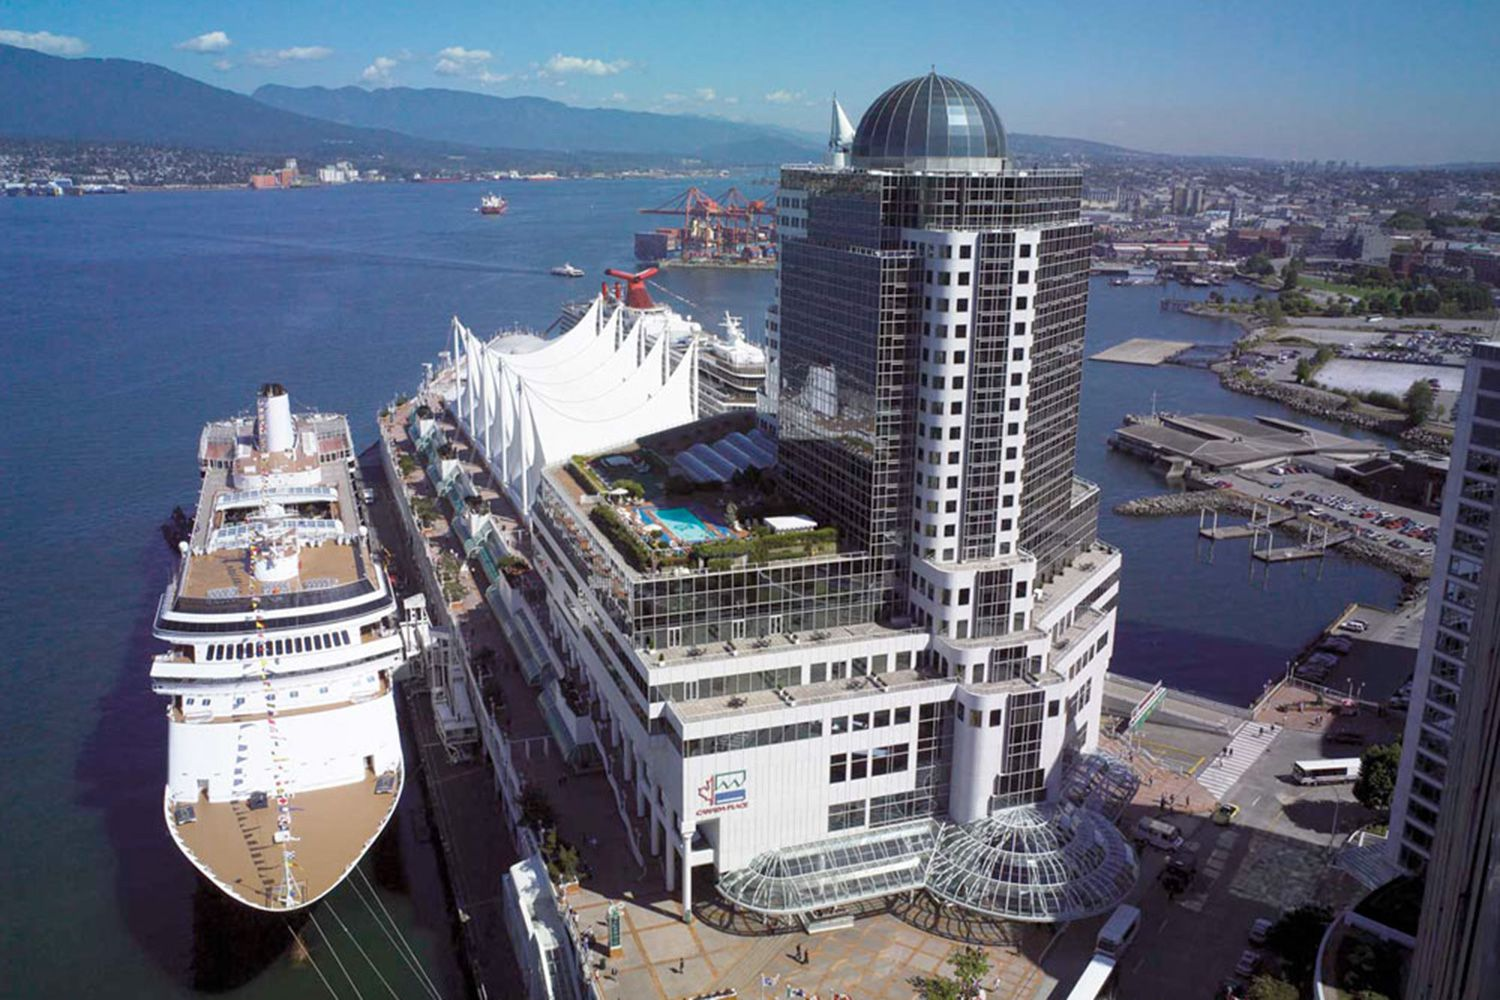 Compare Car Insurance Rates >> 9 Best Vancouver Hotels for Alaska Cruise Passengers